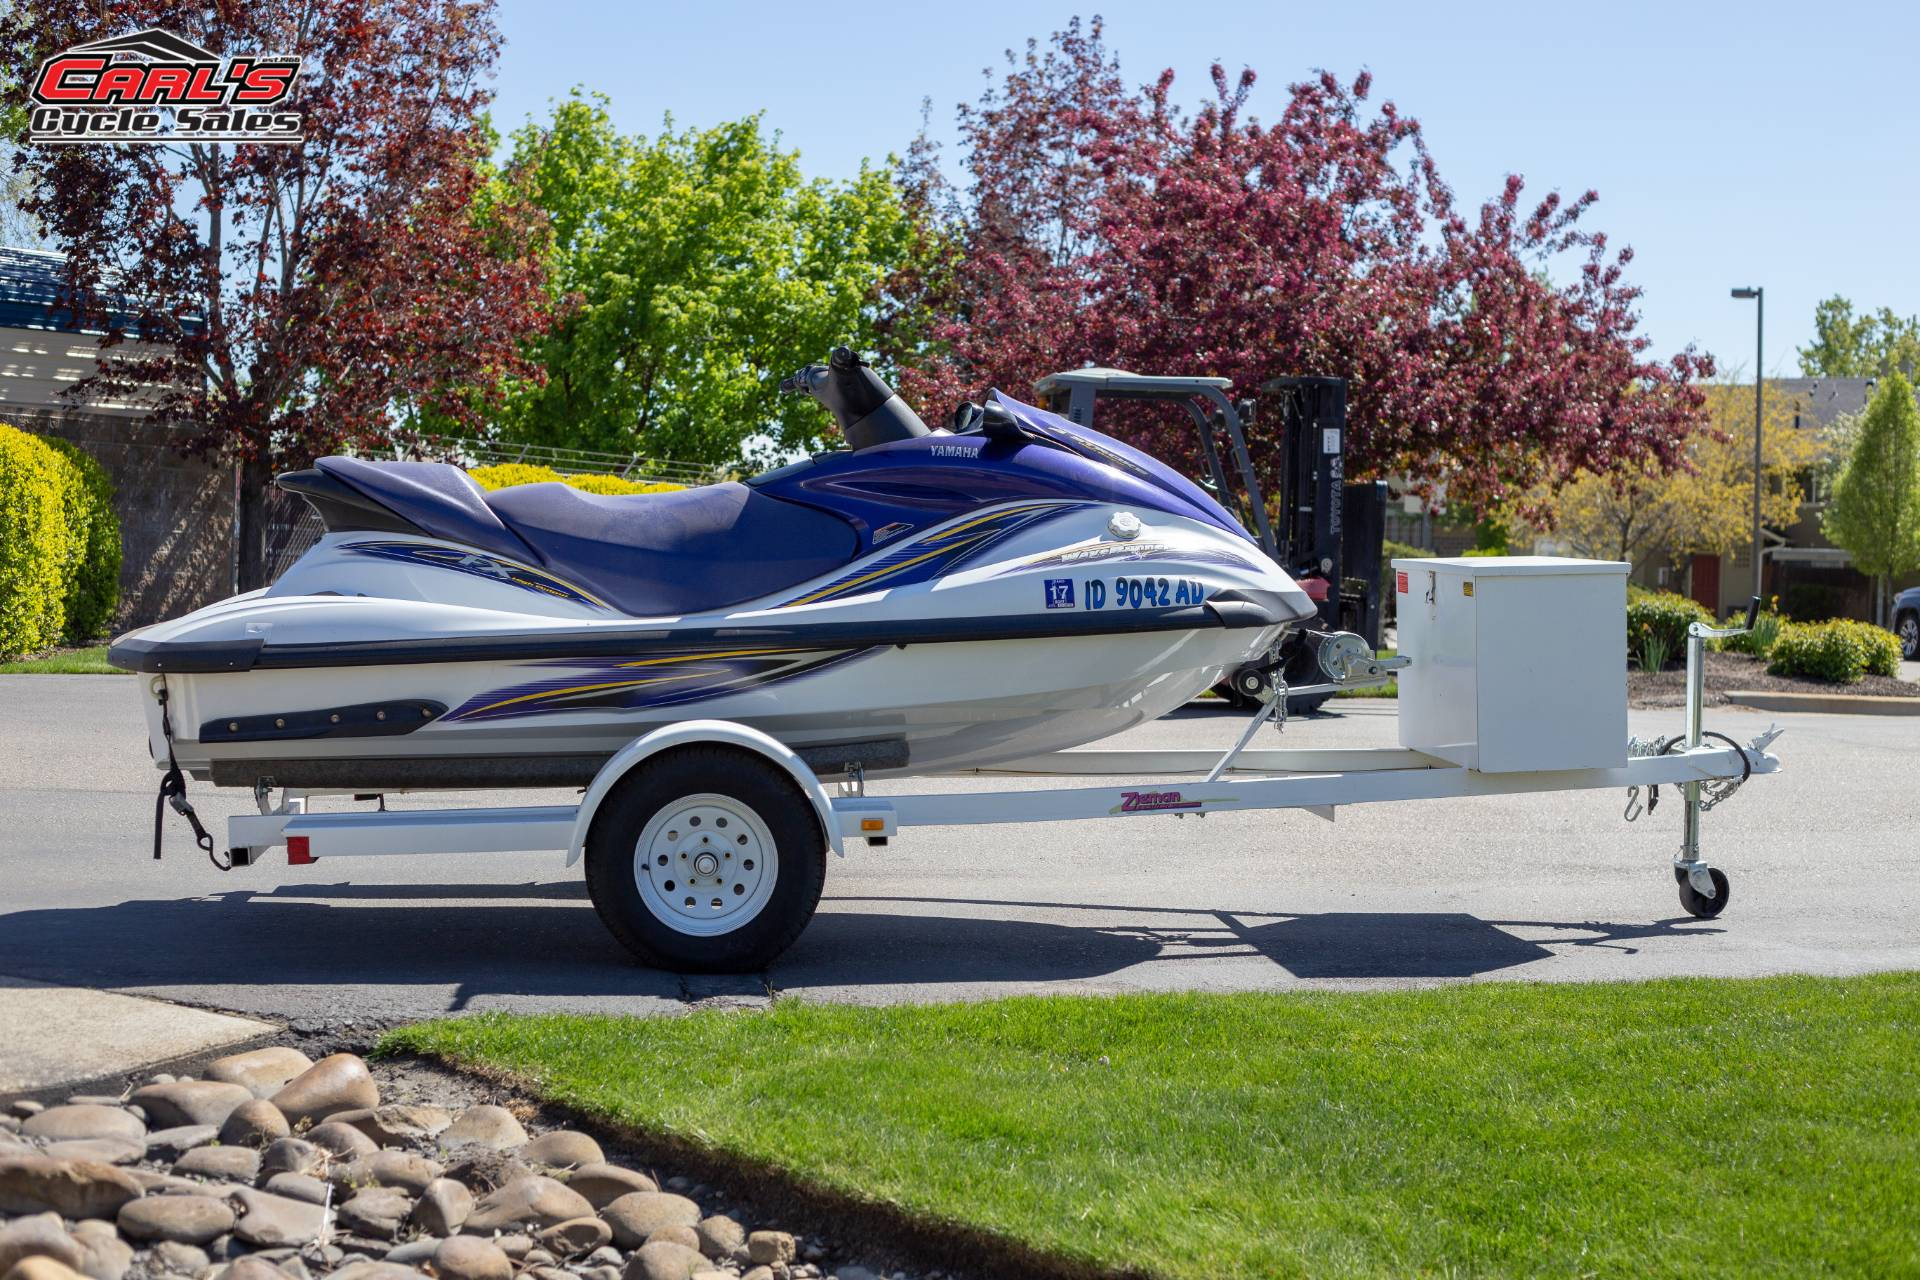 2001 Other Zieman Single Jet Ski Trailer in Boise, Idaho - Photo 5